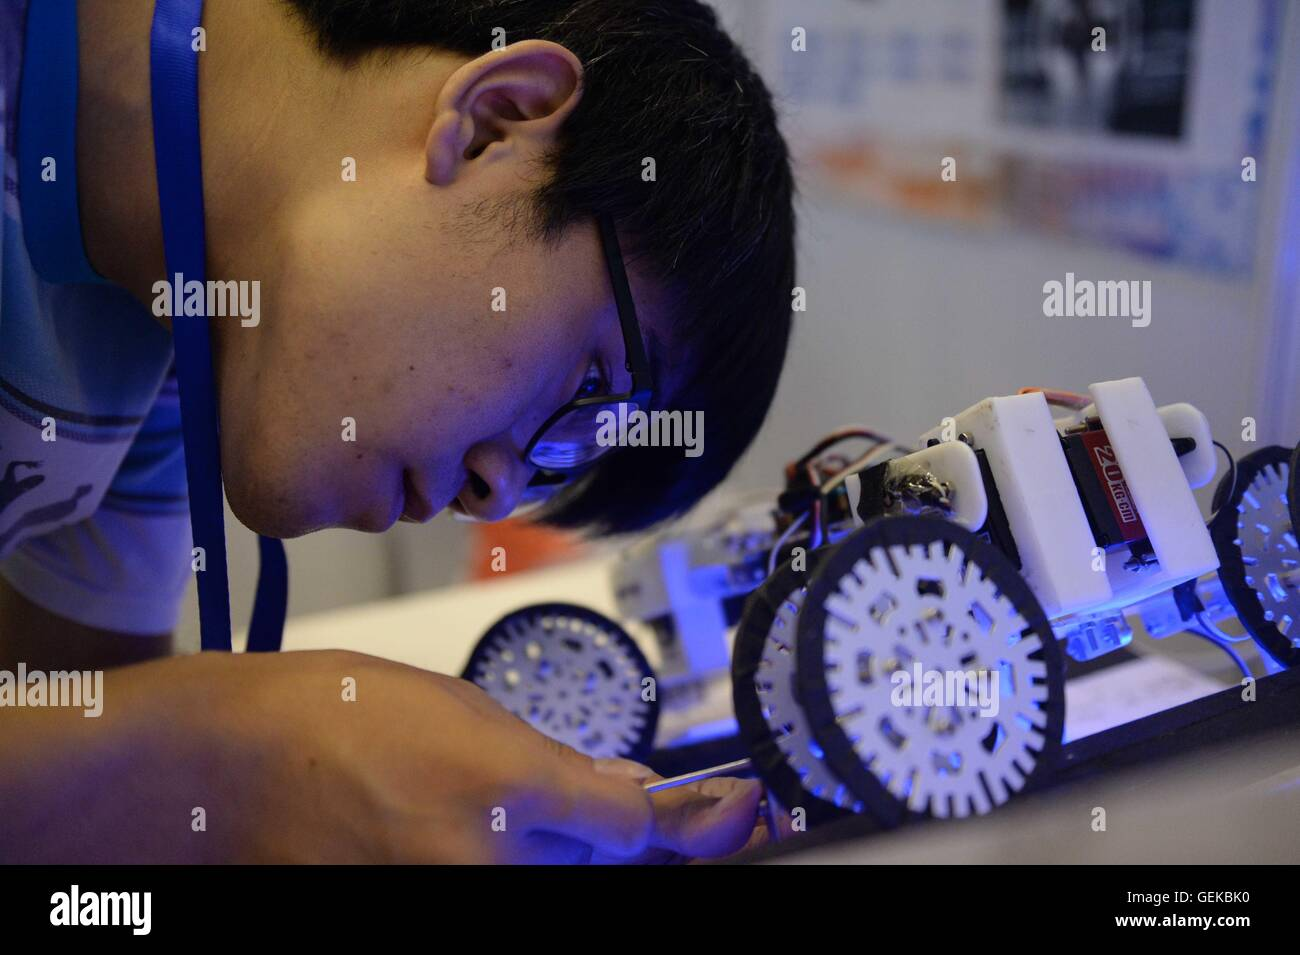 Harbin, China's Heilongjiang Province. 27th July, 2016. A college student makes adjustment on a multi-functional - Stock Image